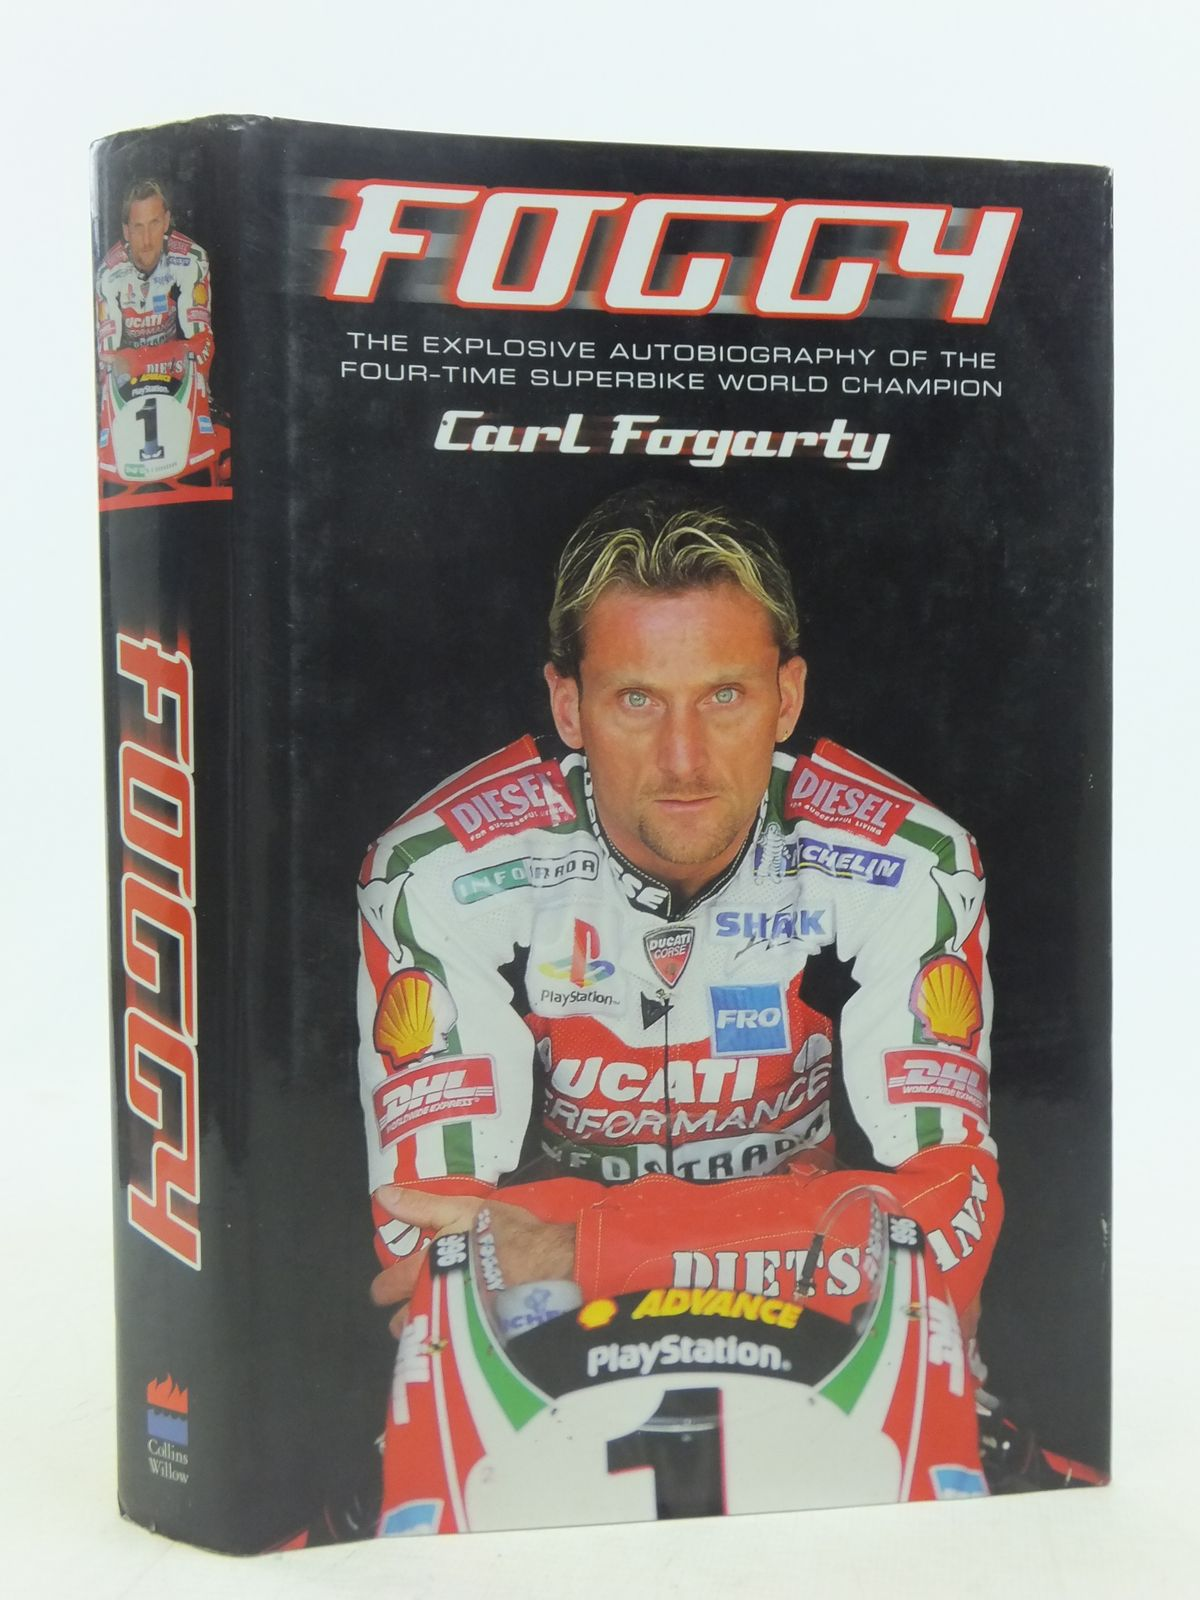 Photo of FOGGY THE EXPLOSIVE AUTOBIOGRAPHY OF THE FOUR-TIME SUPERBIKE WORLD CHAMPION written by Fogarty, Carl<br />Bramwell, Neil published by Collins Willow (STOCK CODE: 1606216)  for sale by Stella & Rose's Books